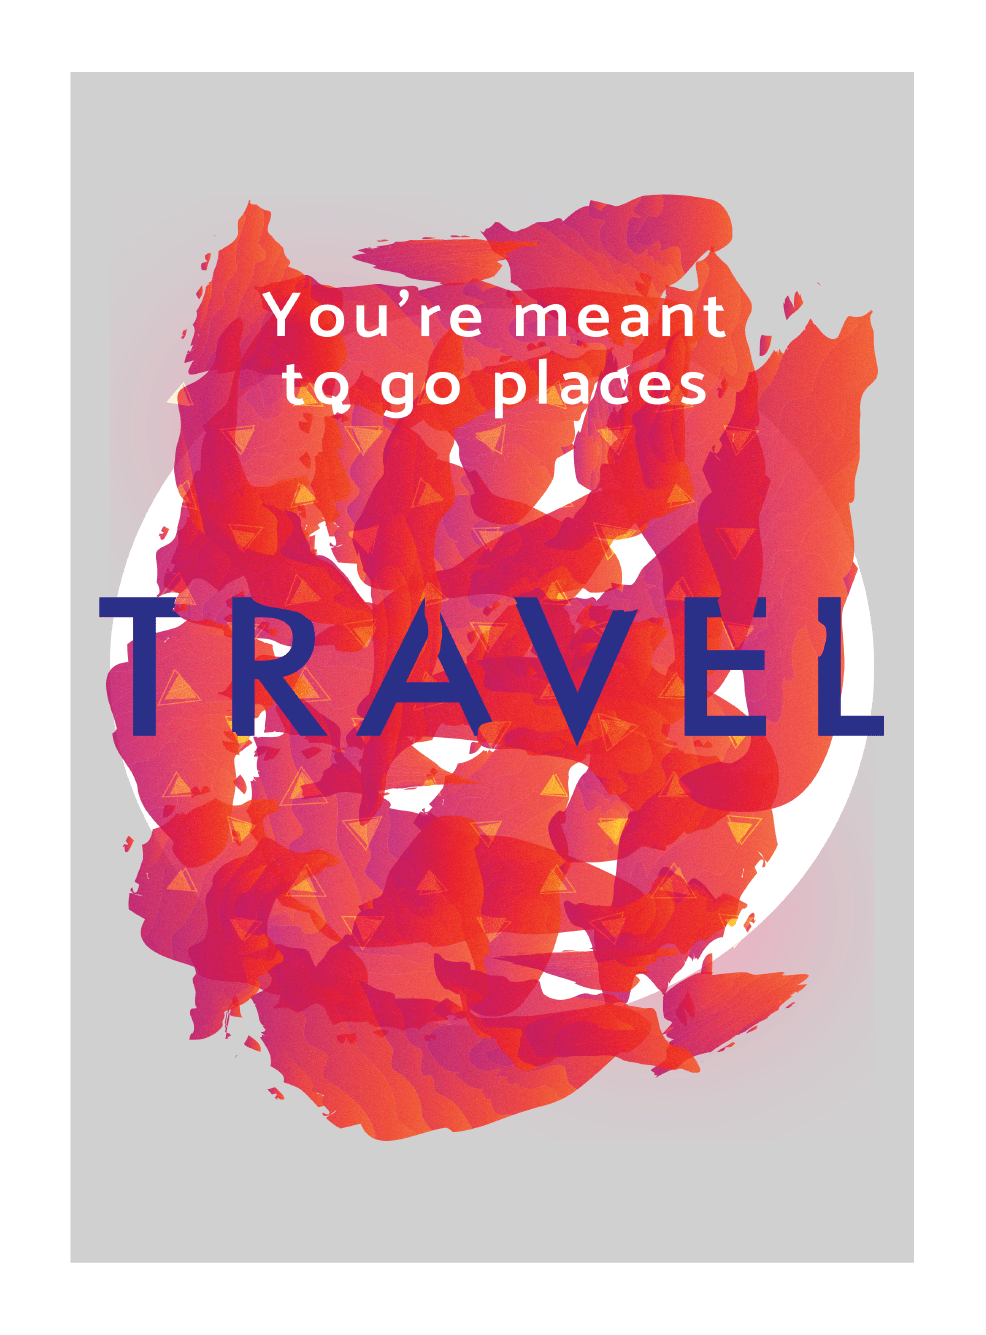 Travel Psychedelic - image 1 - student project